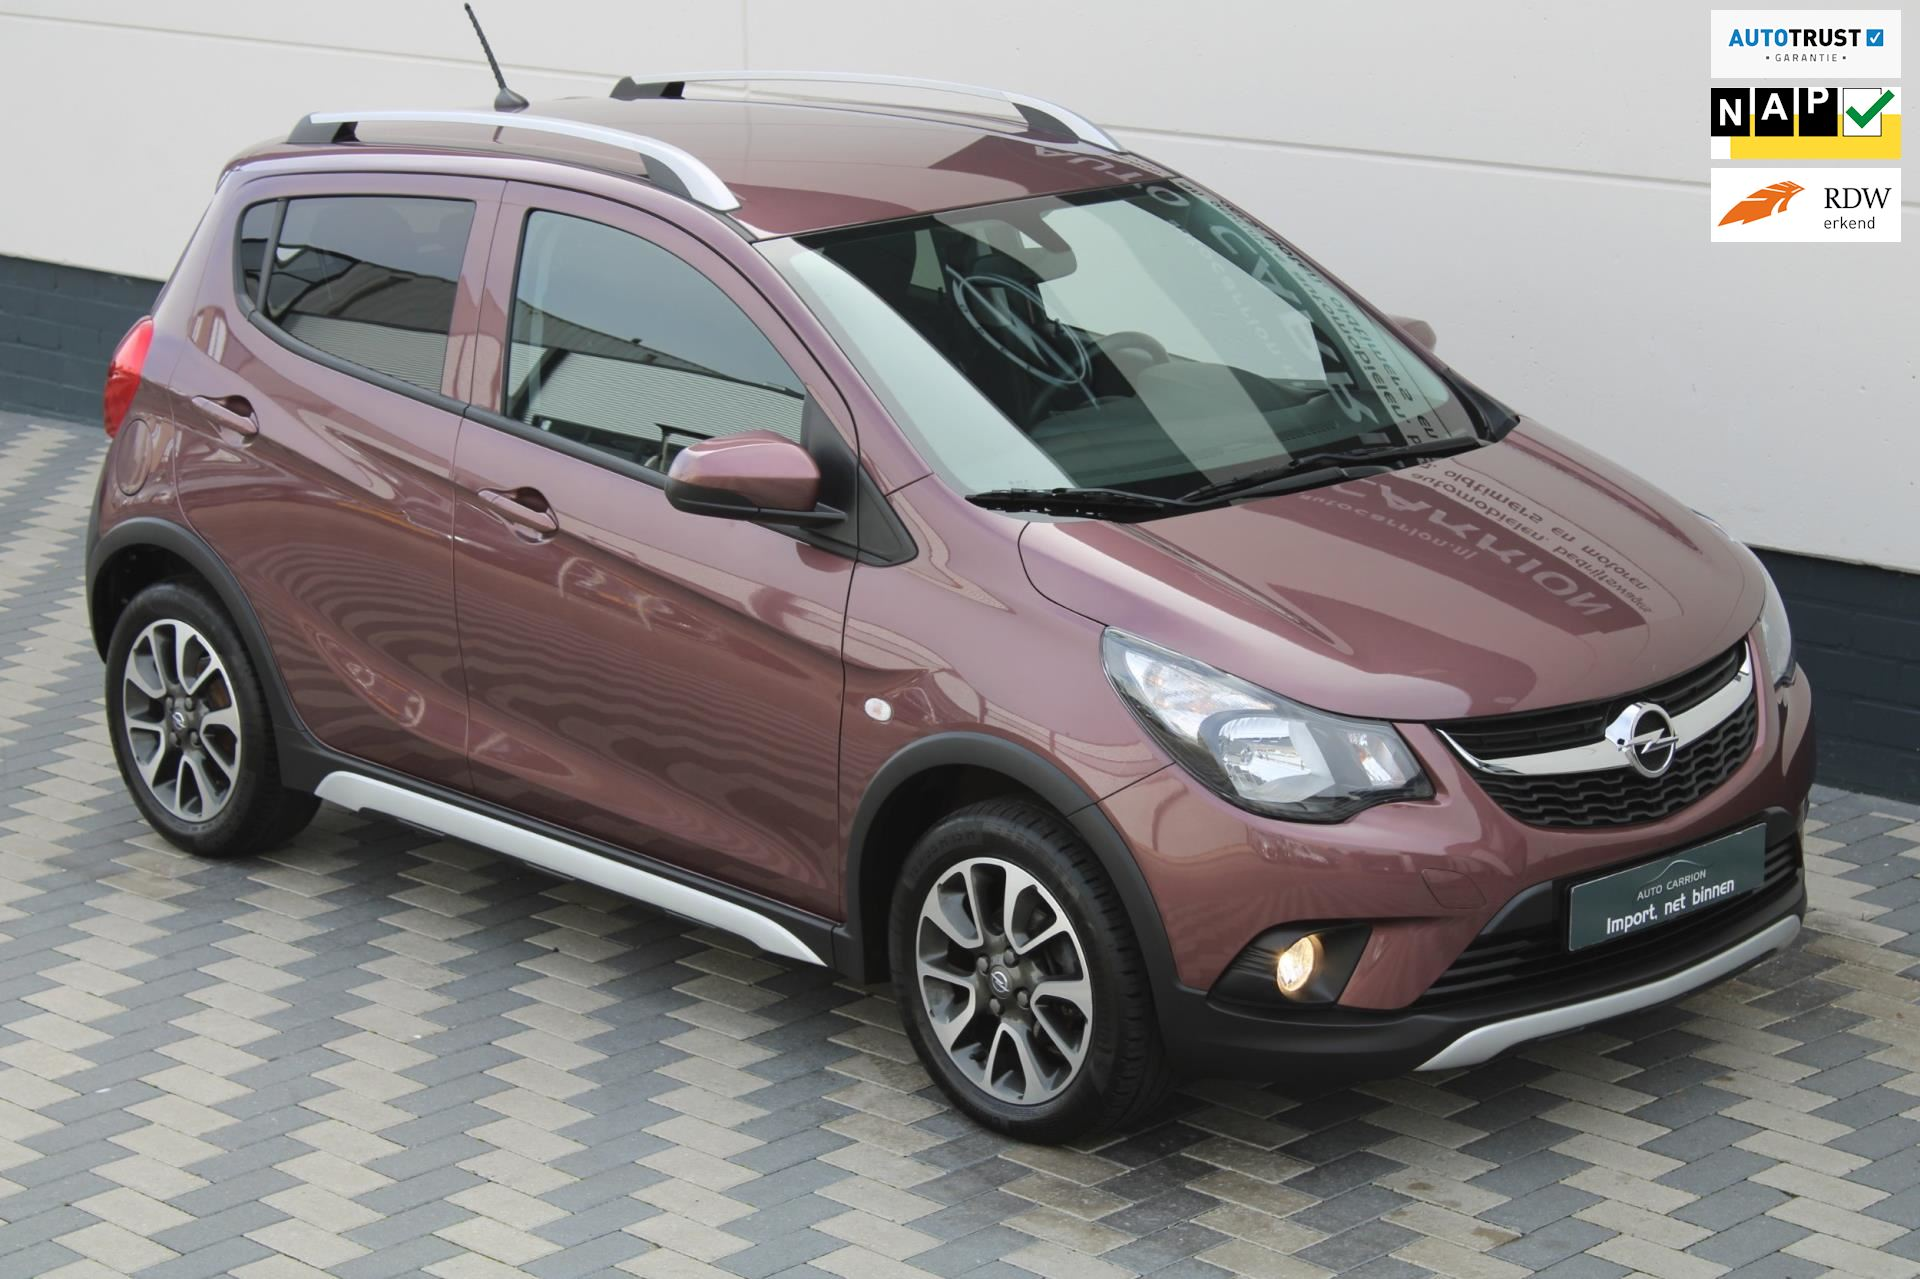 Opel KARL occasion - CARRION